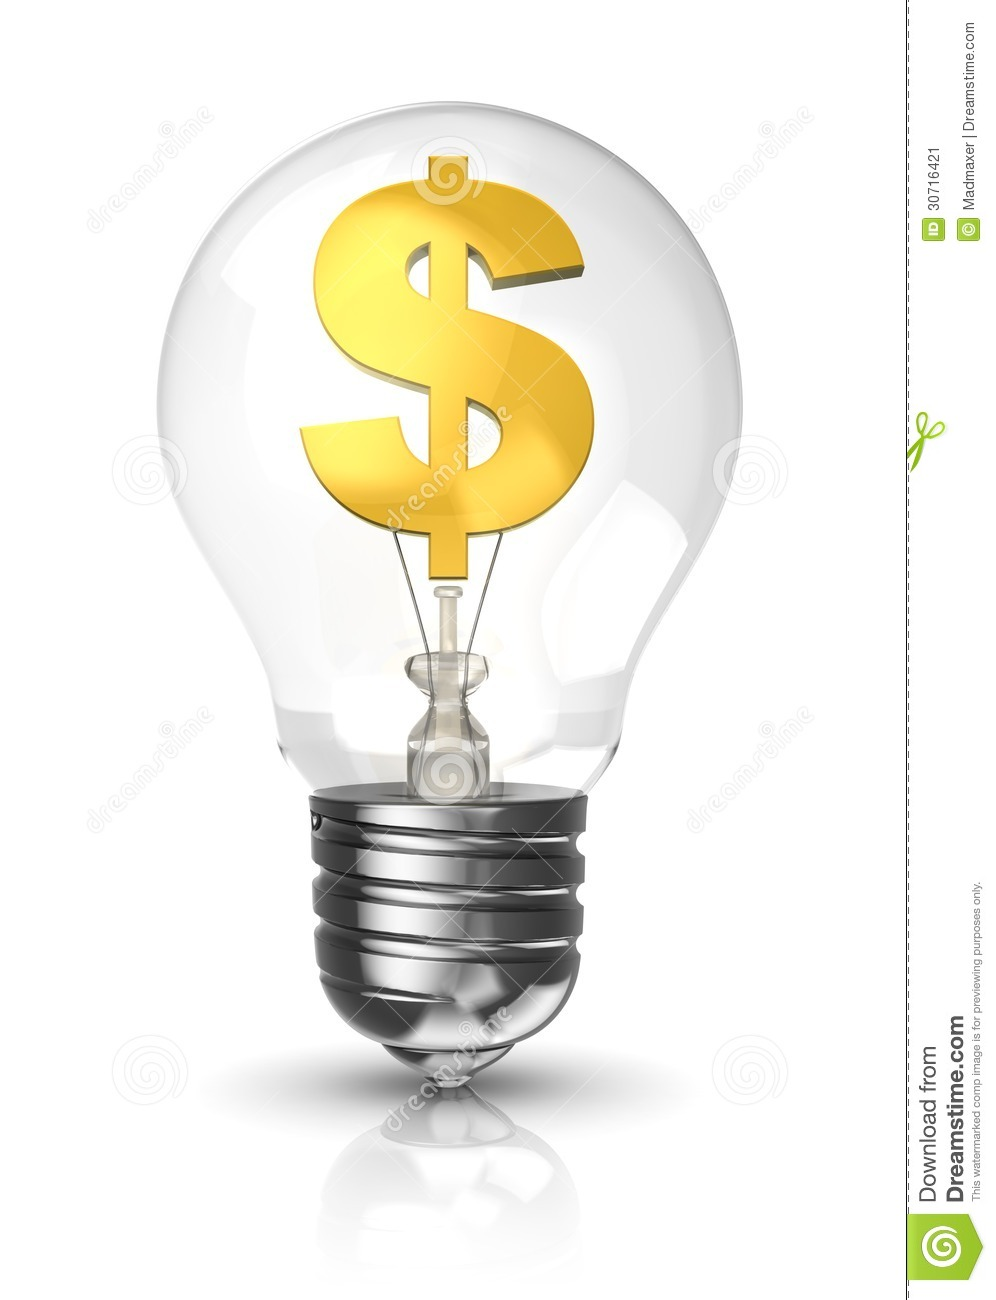 Light Bulb With A Dollar Sign Stock Image  Image 30716421. Coffee Cup Logo. Pdd Nos Signs. Wedding Gift Signs Of Stroke. Vegetable Banners. Pneumococcus Signs. Lord Krishna Stickers. Luau Banners. Claw Decals